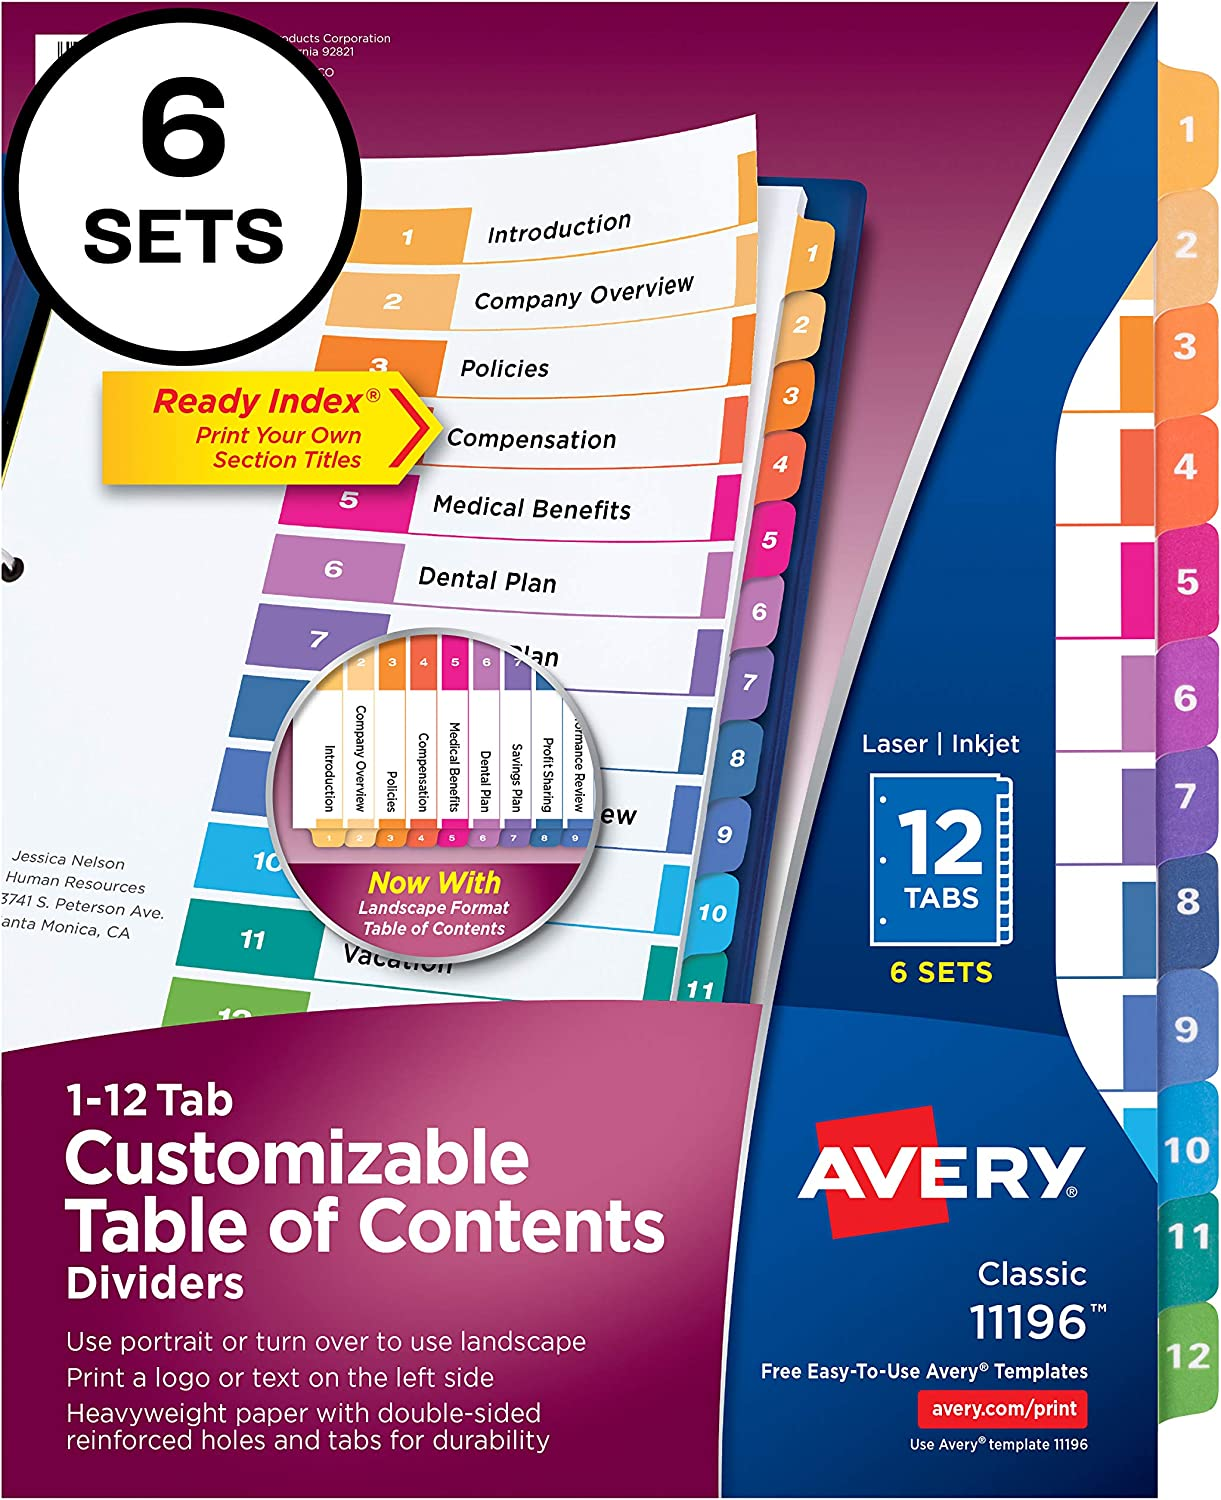 Avery Ready Index 12-Tab Binder Dividers, Customizable Table of Contents, Multicolor Tabs, 6 Sets (11196) : Binder Index Dividers : Office Products